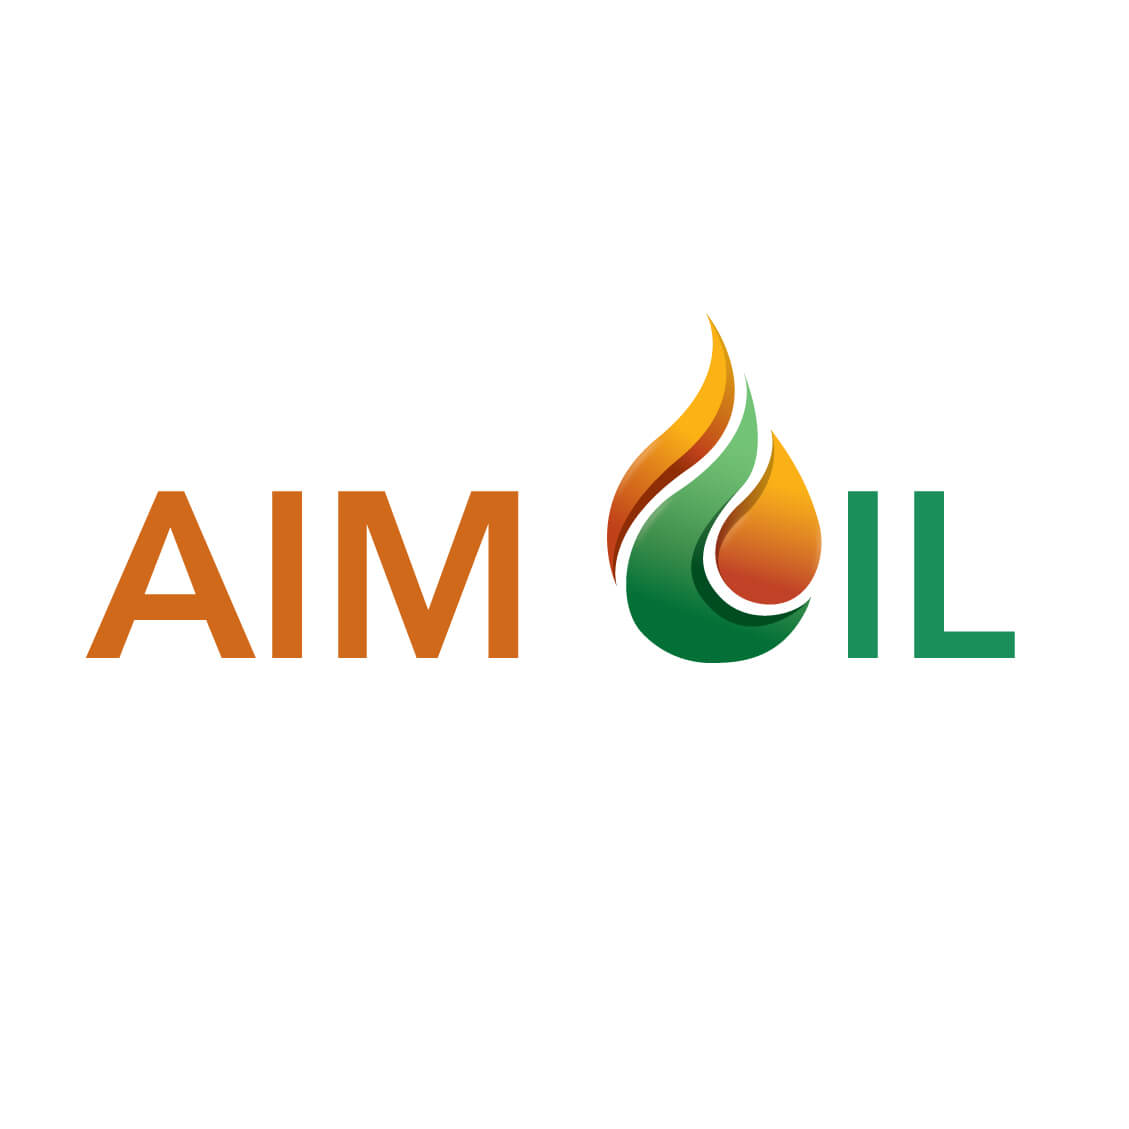 aim-full-logo-SQUARE